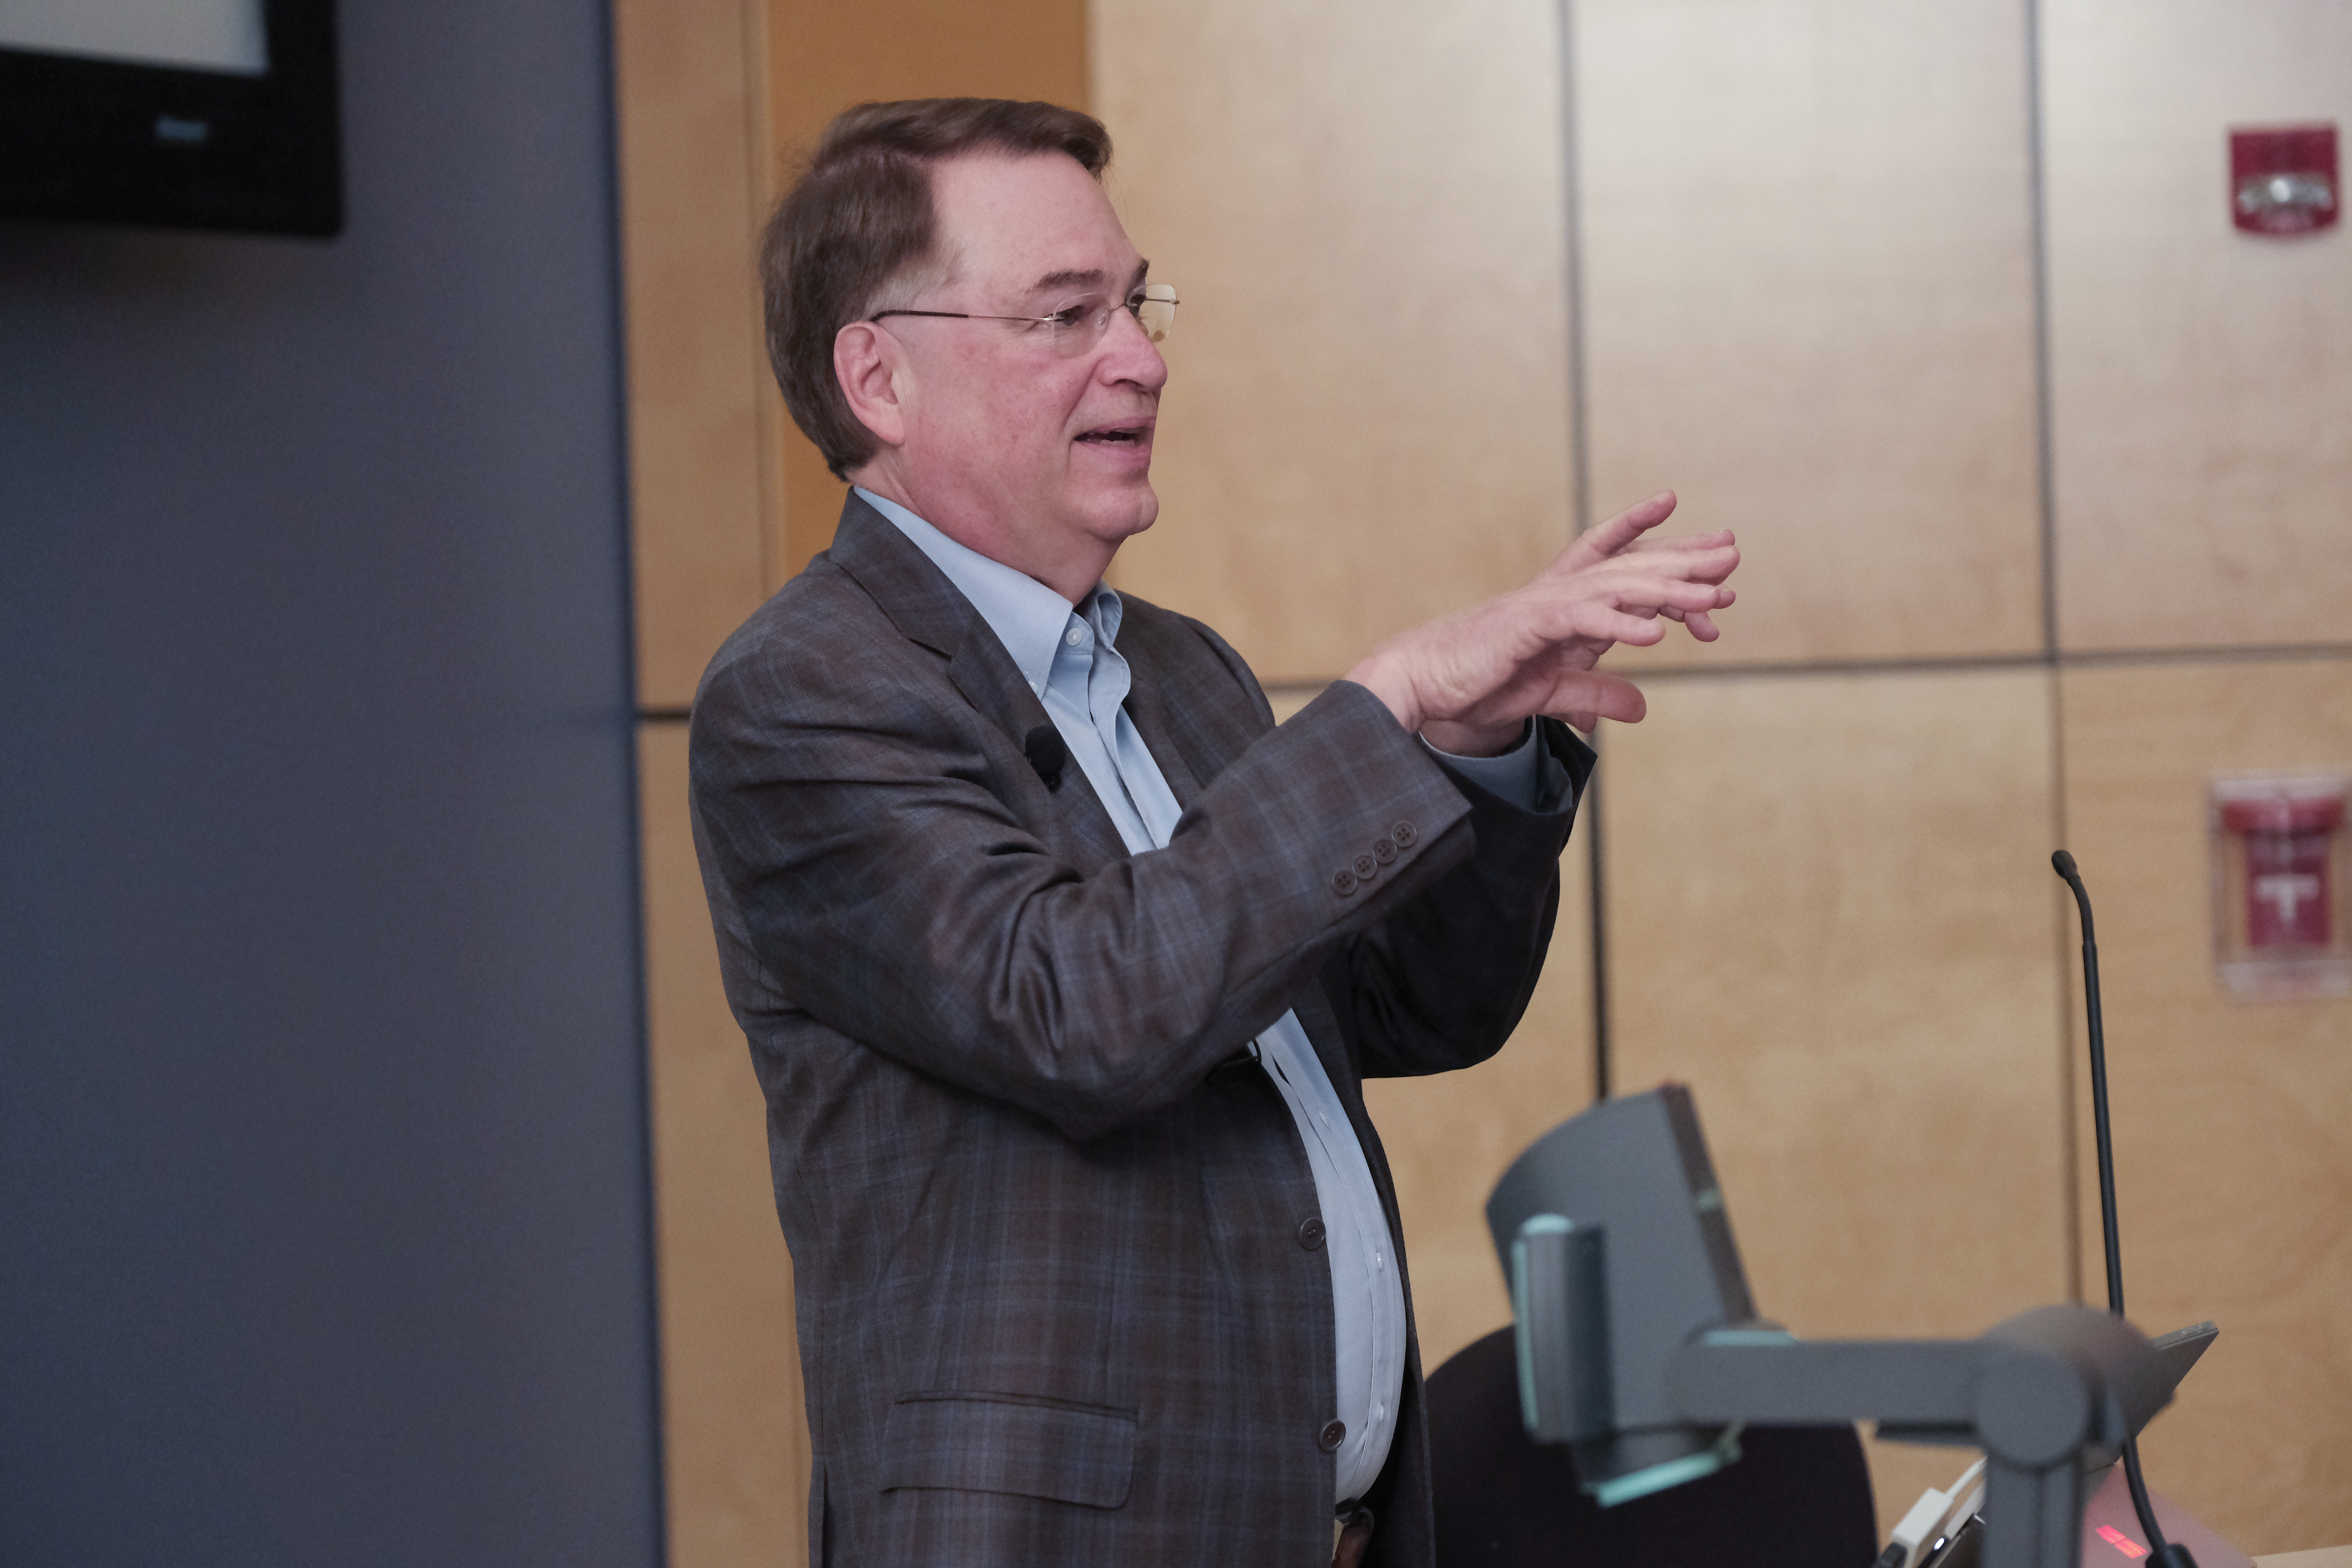 Big Data thought leader Larry Smarr, holder of the Harry E. Gruber professorship in UCSD's Department of Computer Science and Engineering lectured in the auditorium of the College of Science, Engineering and Technology. Professor Smart speculated on the exponentially growing machine intelligence and how it will increasingly inter-operate with human intelligence. (Charles A. Smith/University Communications)